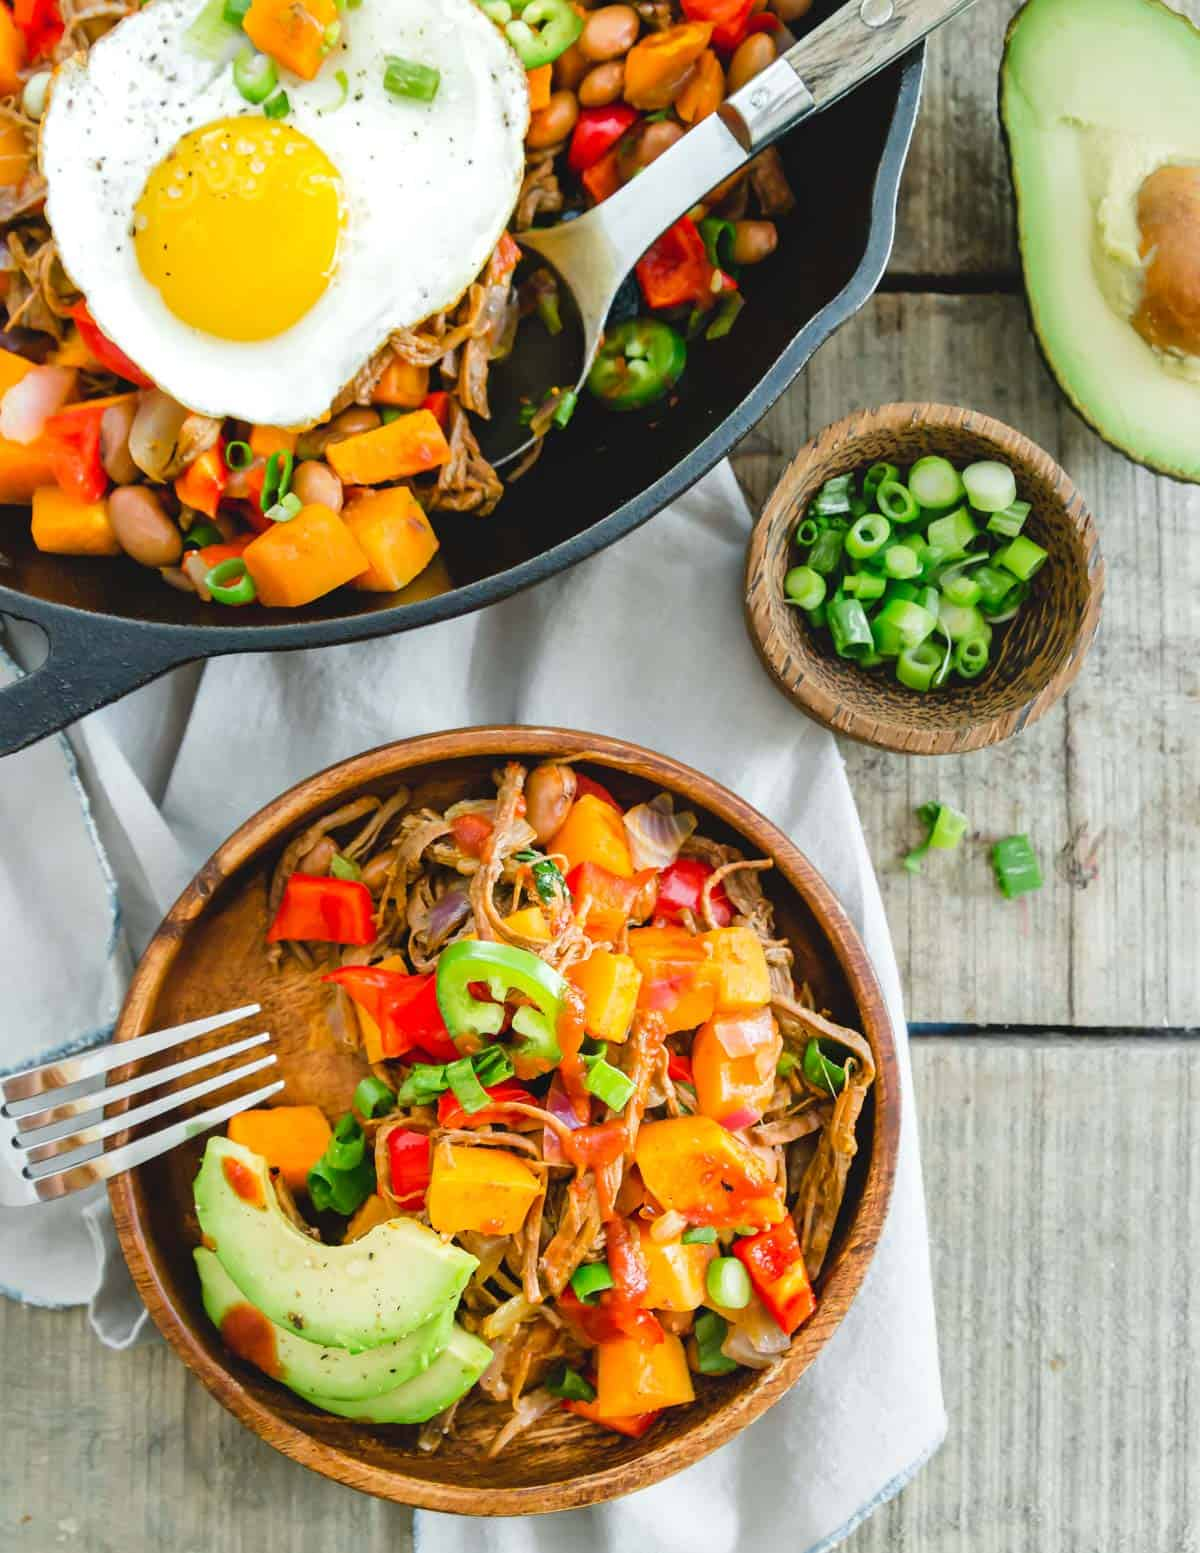 Easy brisket hash recipe using leftover beef brisket served with jalapeños, avocados, green onion and BBQ sauce.